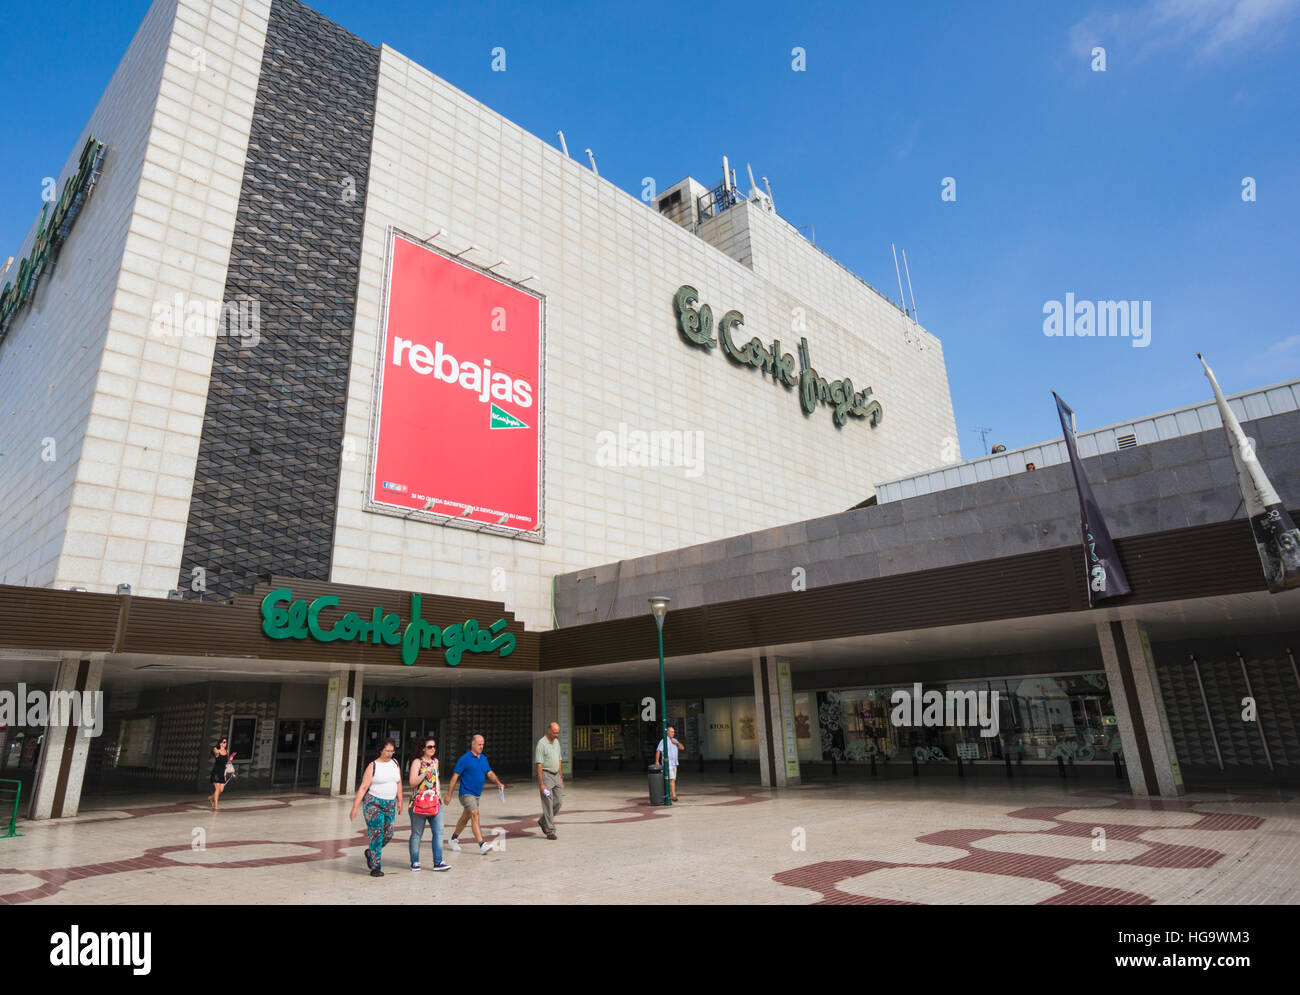 Malaga, Malaga Province, Costa del Sol, Andalusia, southern Spain.  El Corte Ingles department store with summer - Stock Image